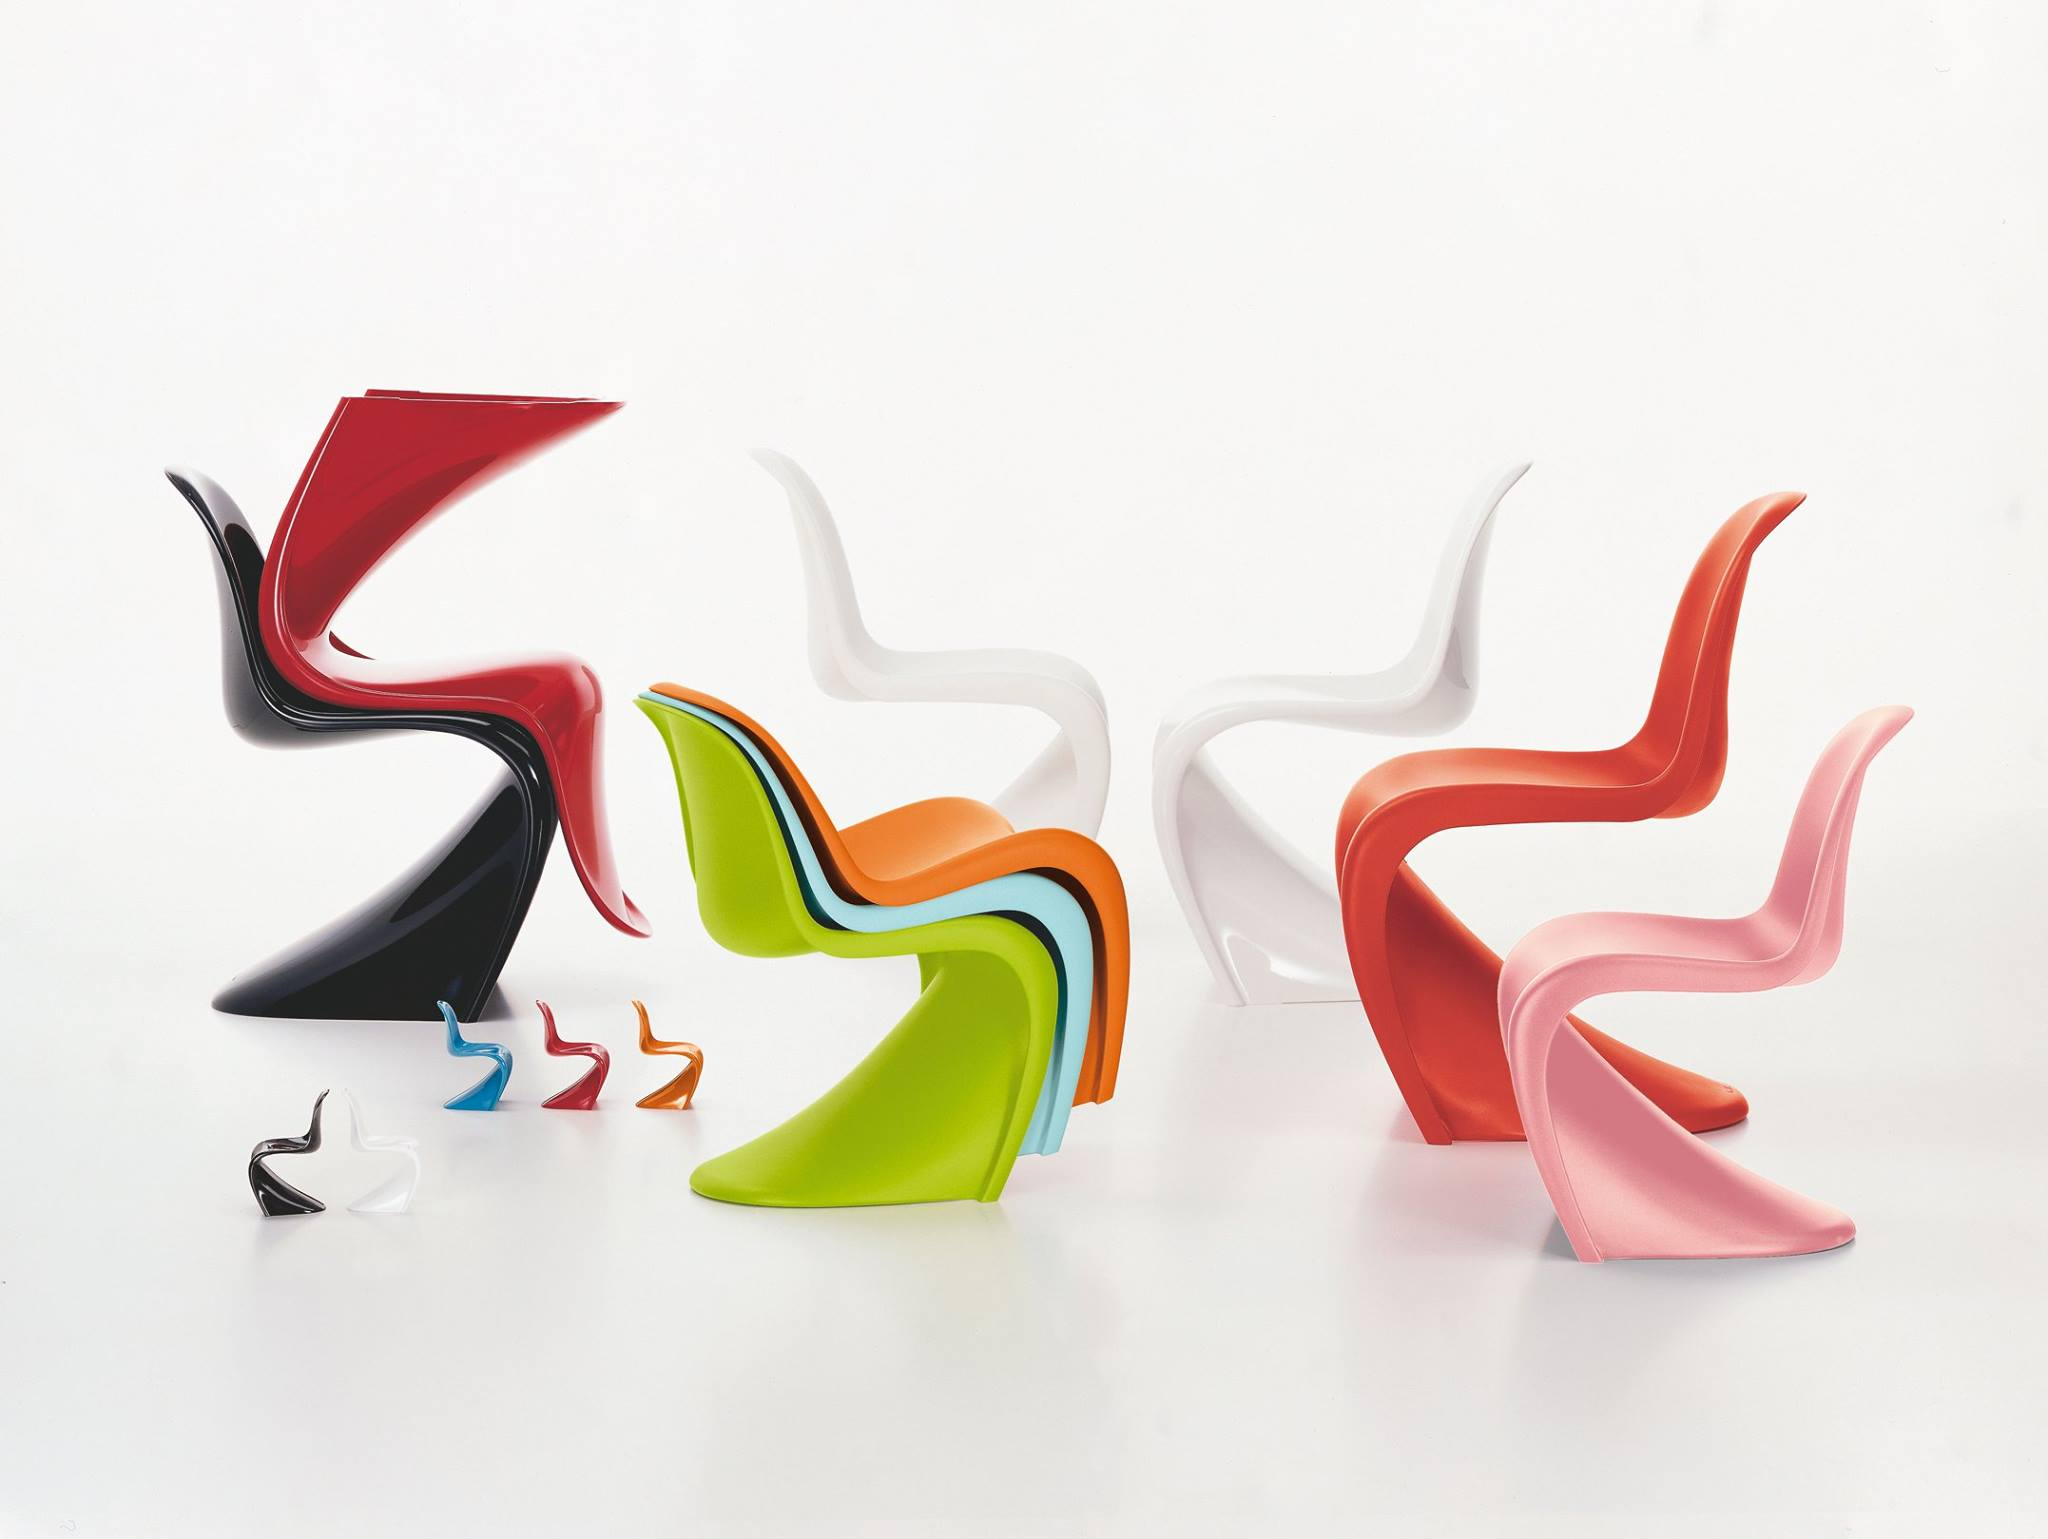 Panton chair: